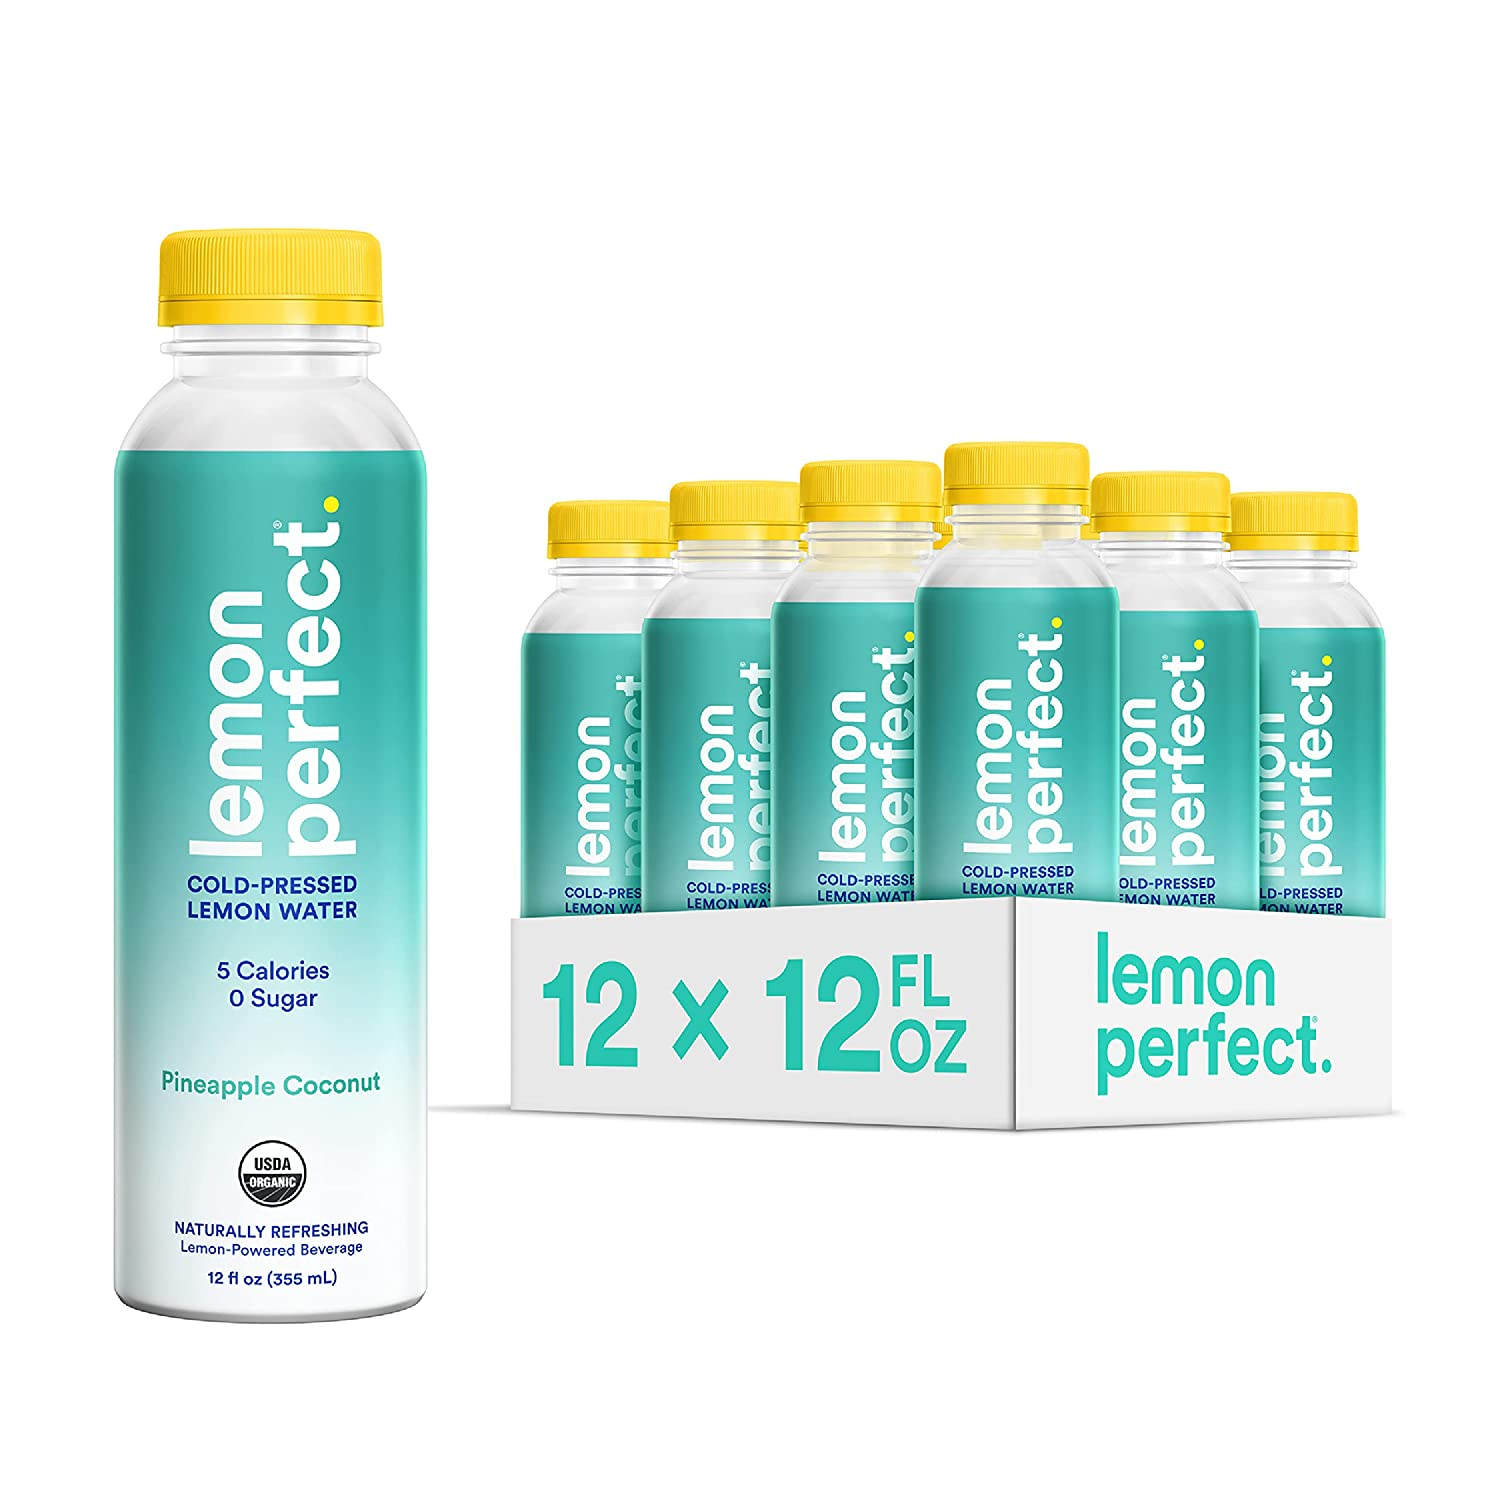 Lemon Perfect, Organic Cold-Pressed Lemon Water, Squeezed from Real Fruit, Flavored Water, Sugar-Free, Keto Certified, No Artificial Ingredients, Pineapple Coconut (12-Pack)